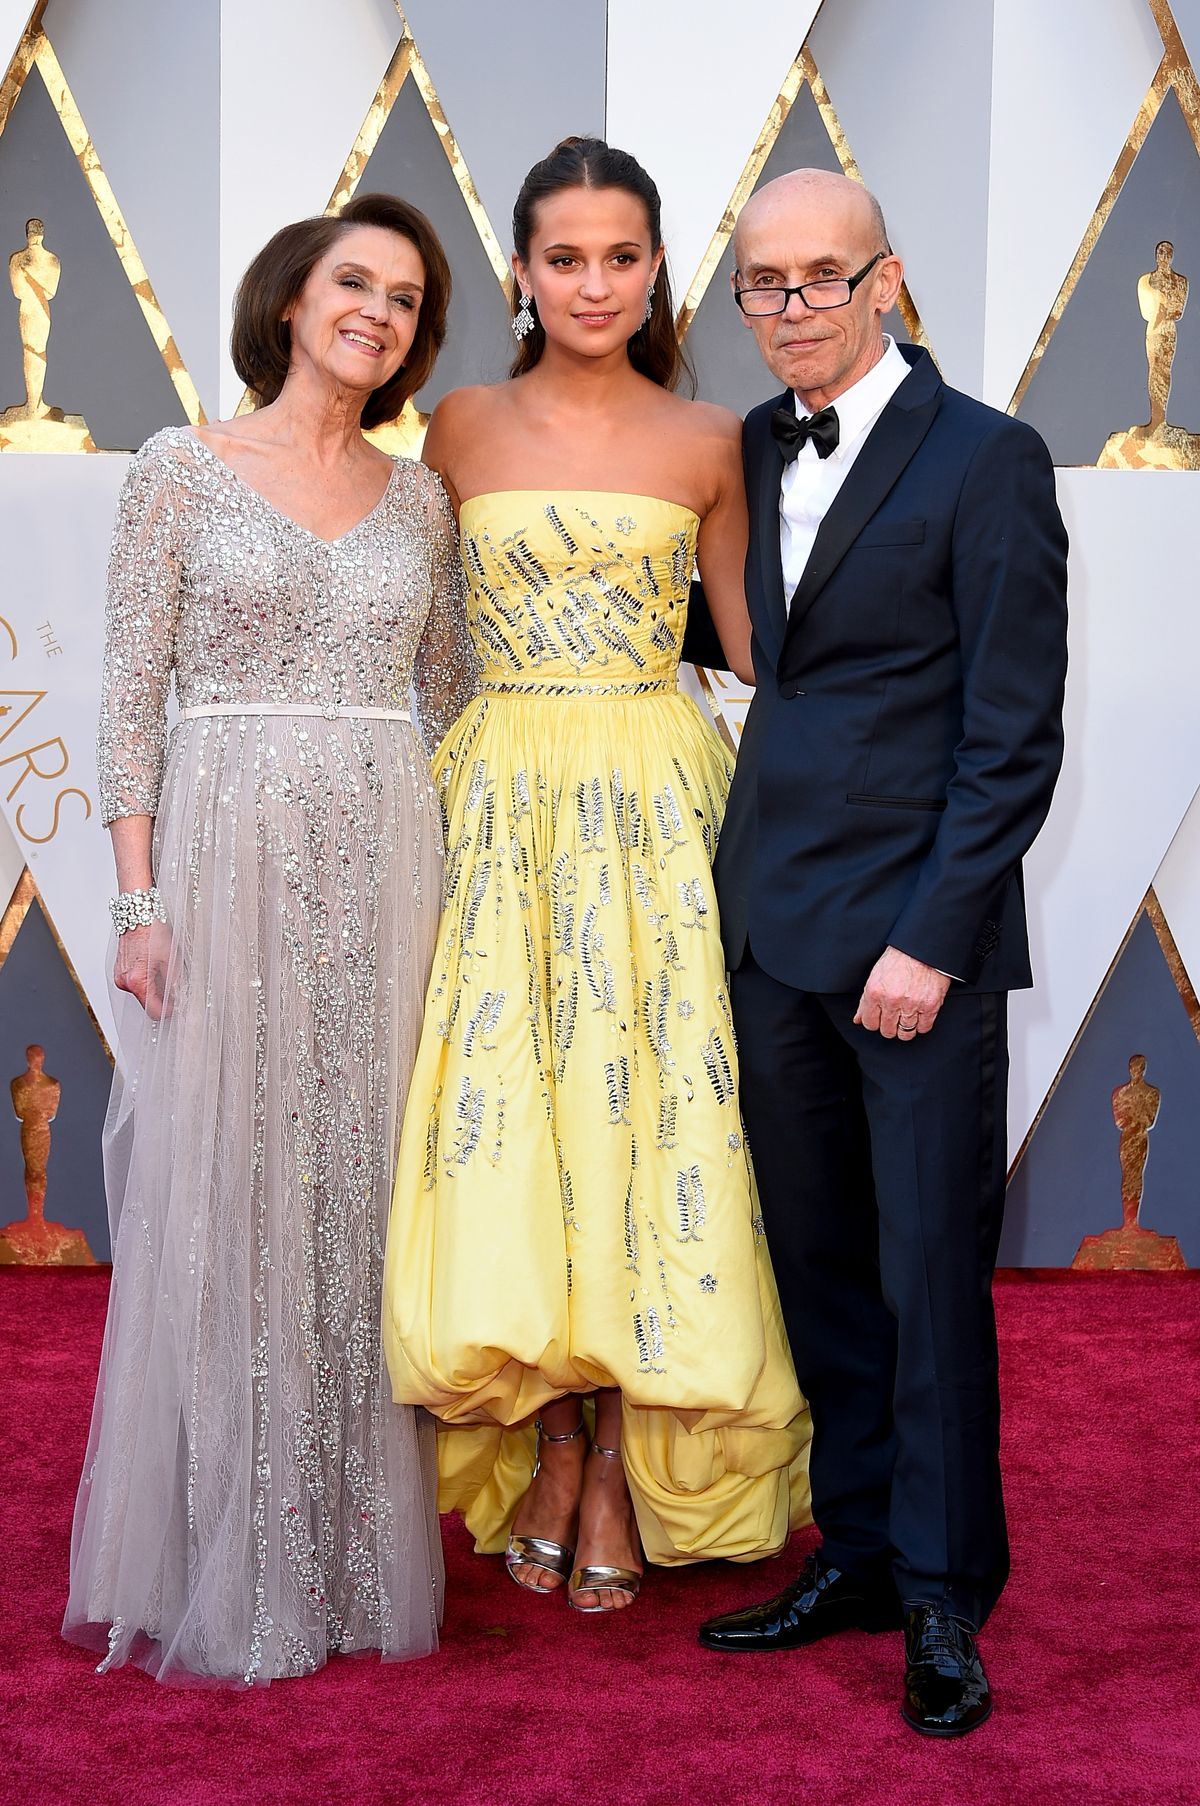 HOLLYWOOD, CA - FEBRUARY 28: (L-R) Maria Fahl Vikander, actress Alicia Vikander and Svante Vikander attend the 88th Annual Academy Awards at Hollywood & Highland Center on February 28, 2016 in Hollywood, California. (Photo by Steve Granitz/WireImage)